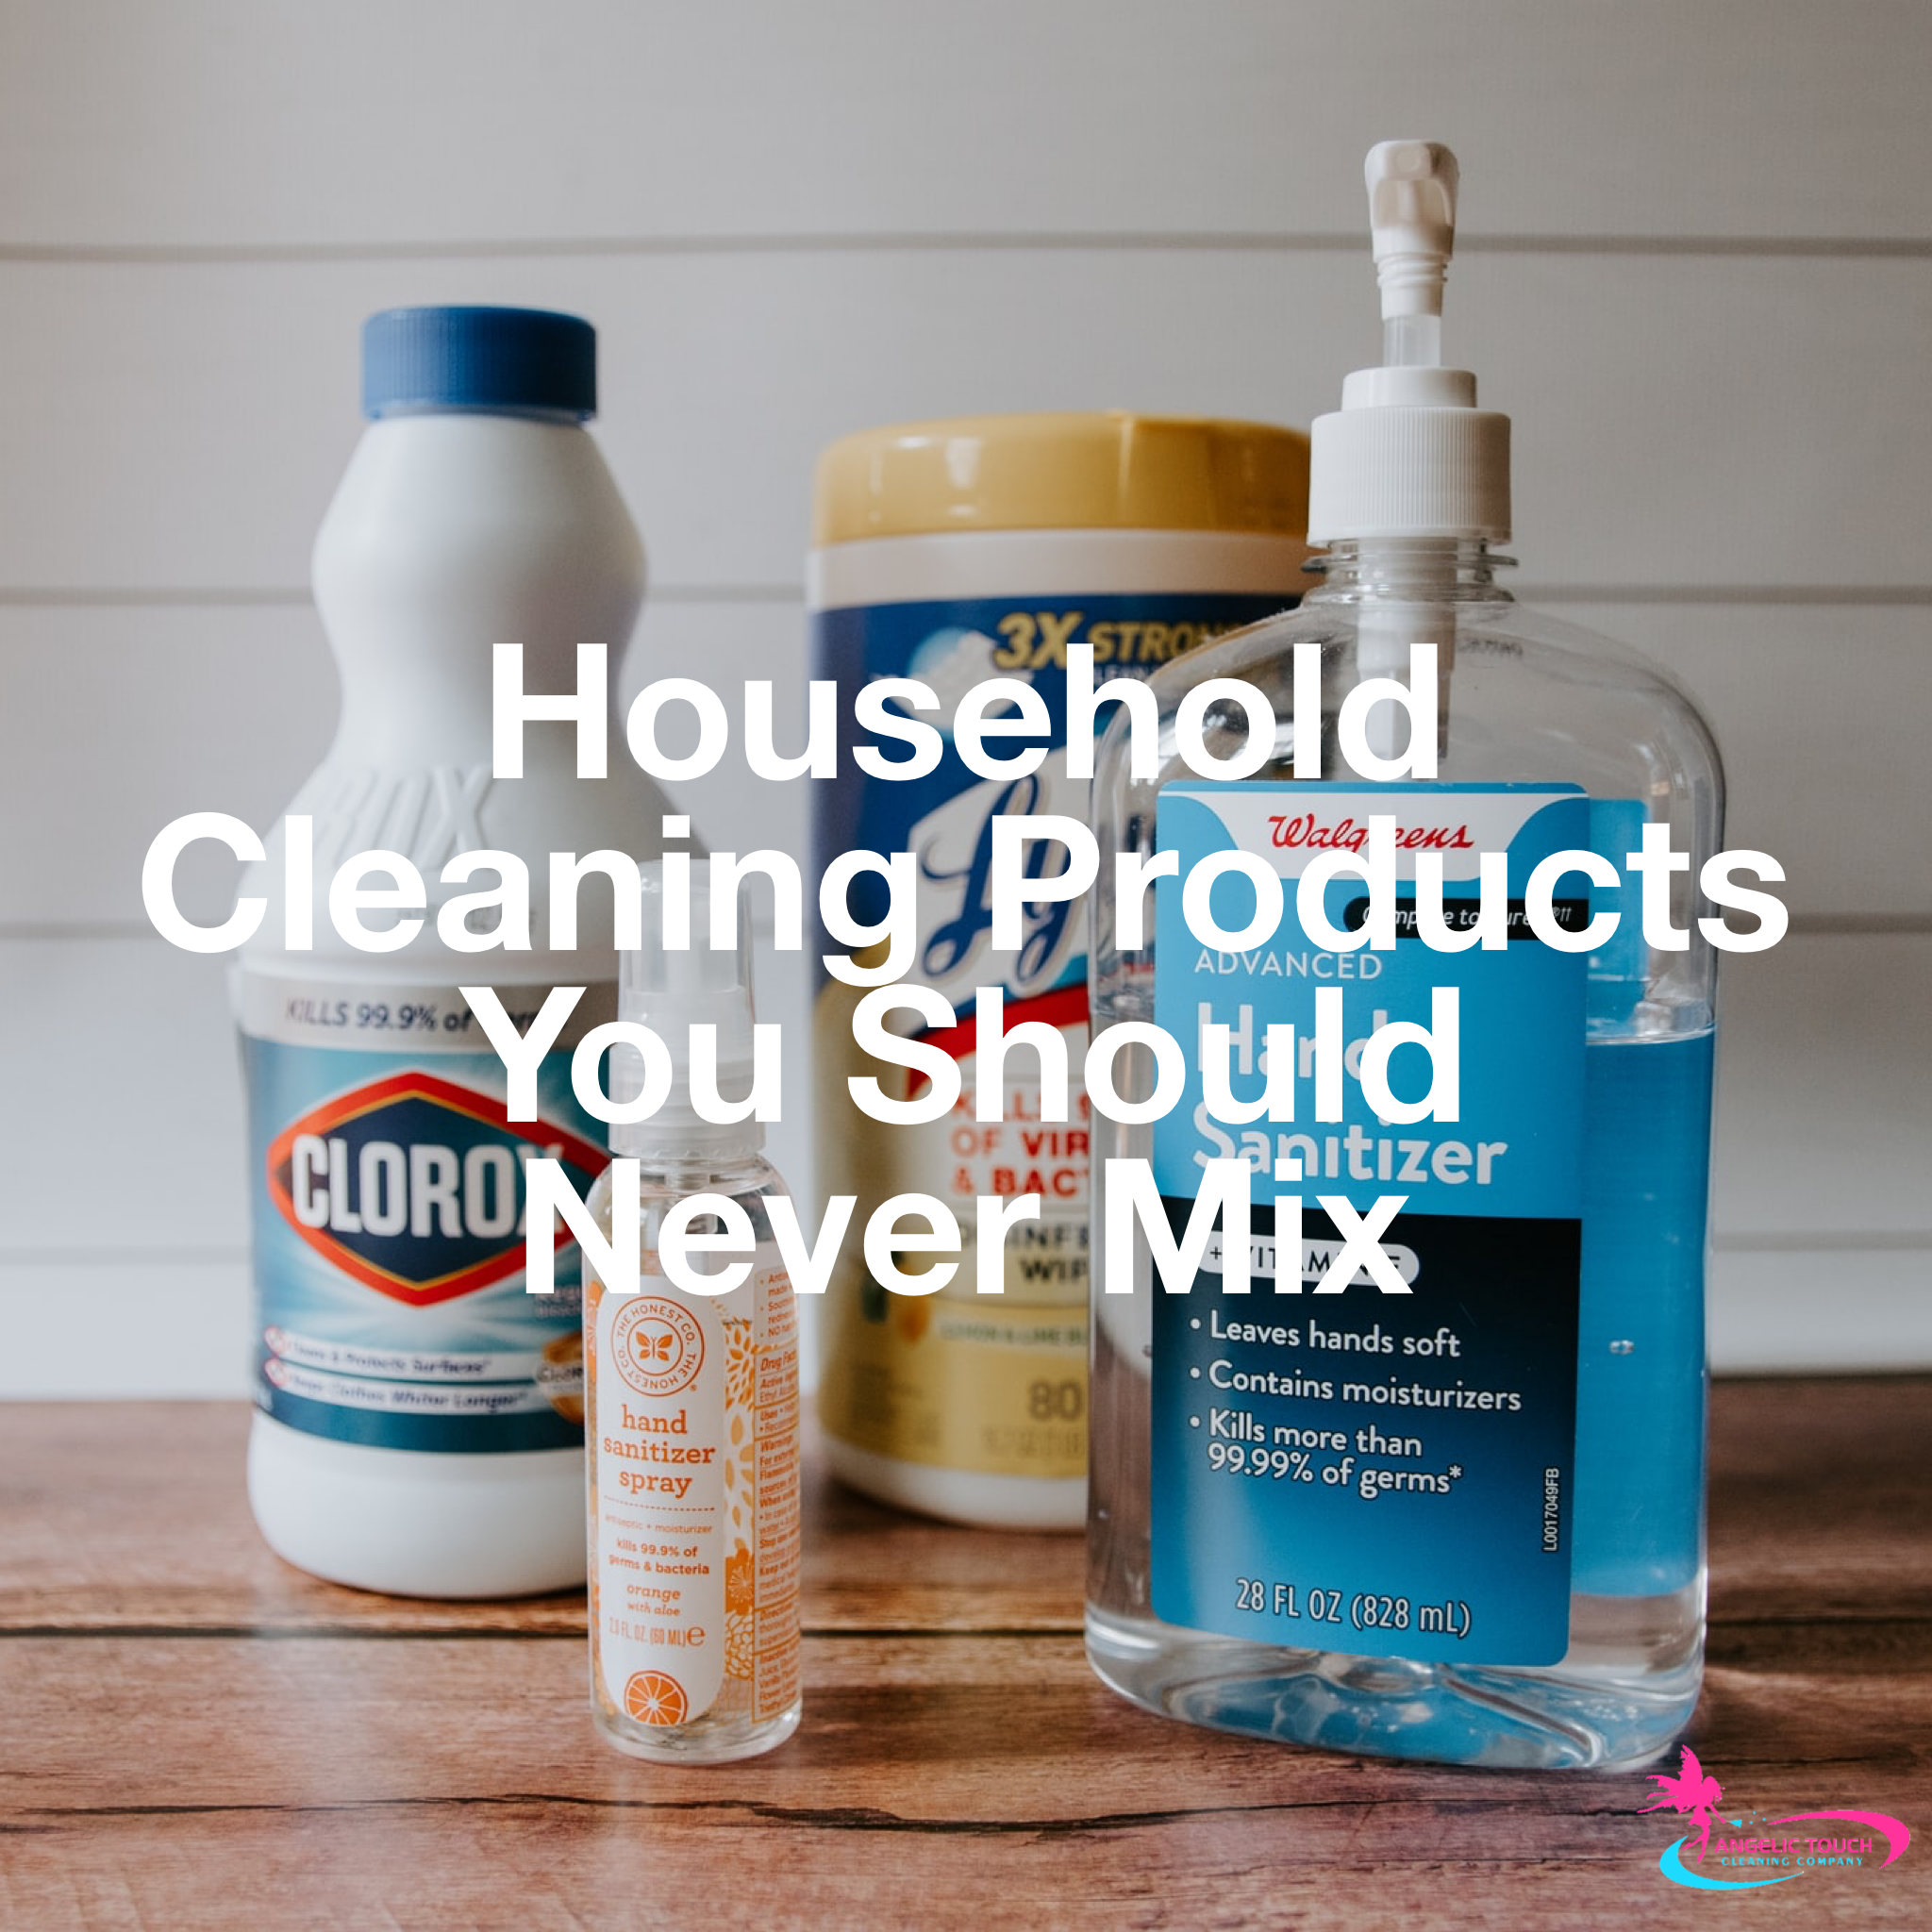 Household Cleaning Products You Should Never Mix